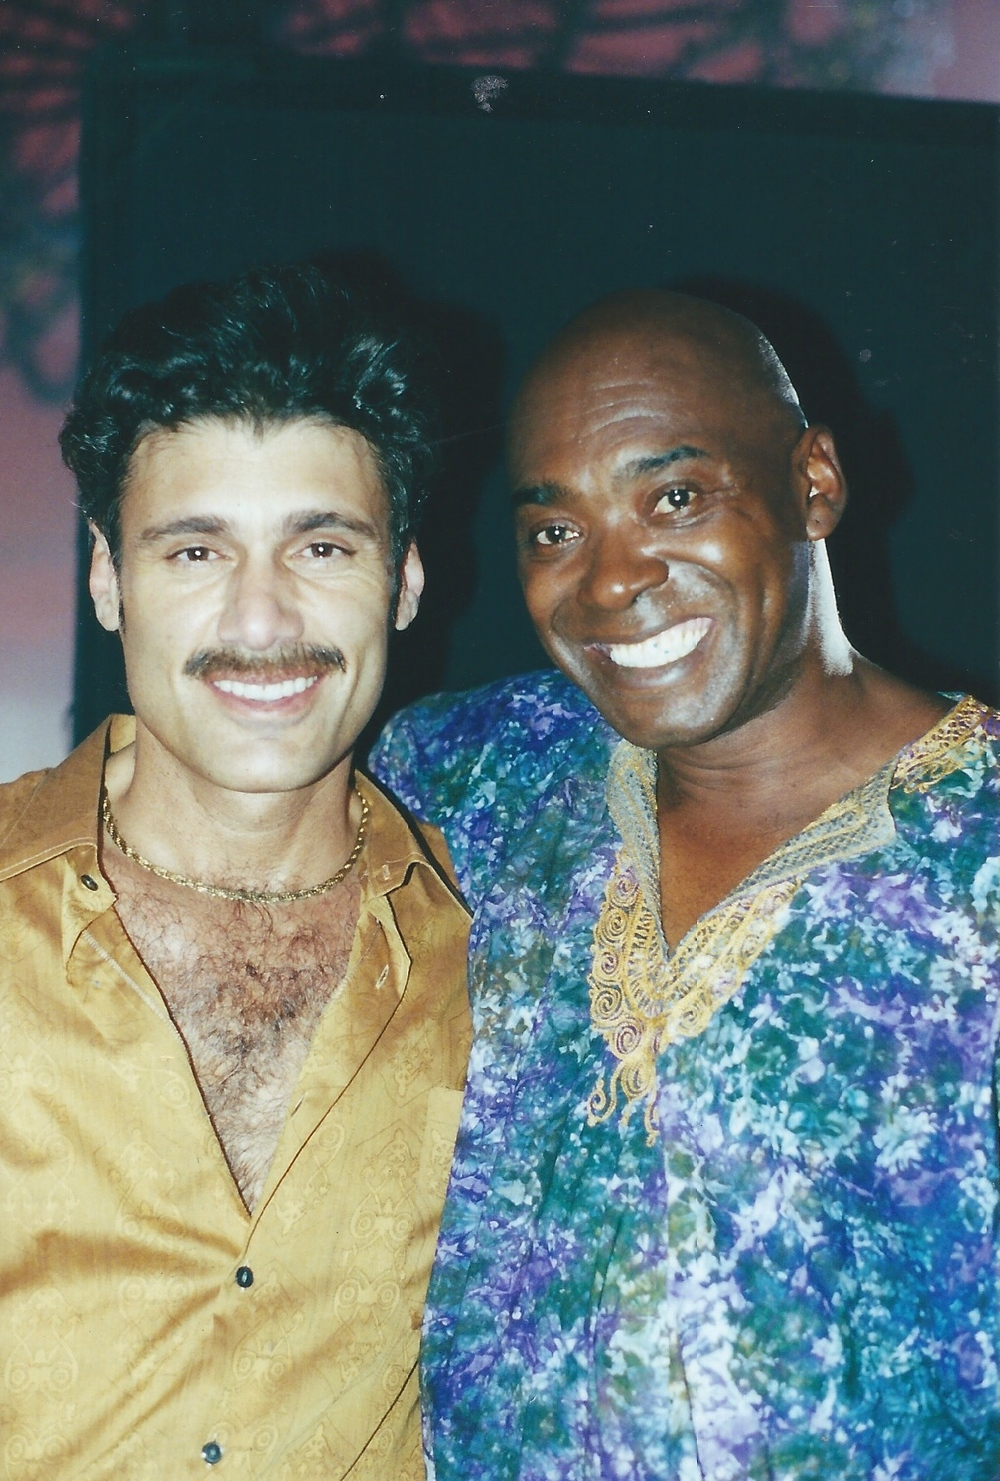 Tomas_Diaz_and_Steven_Bauer.jpeg